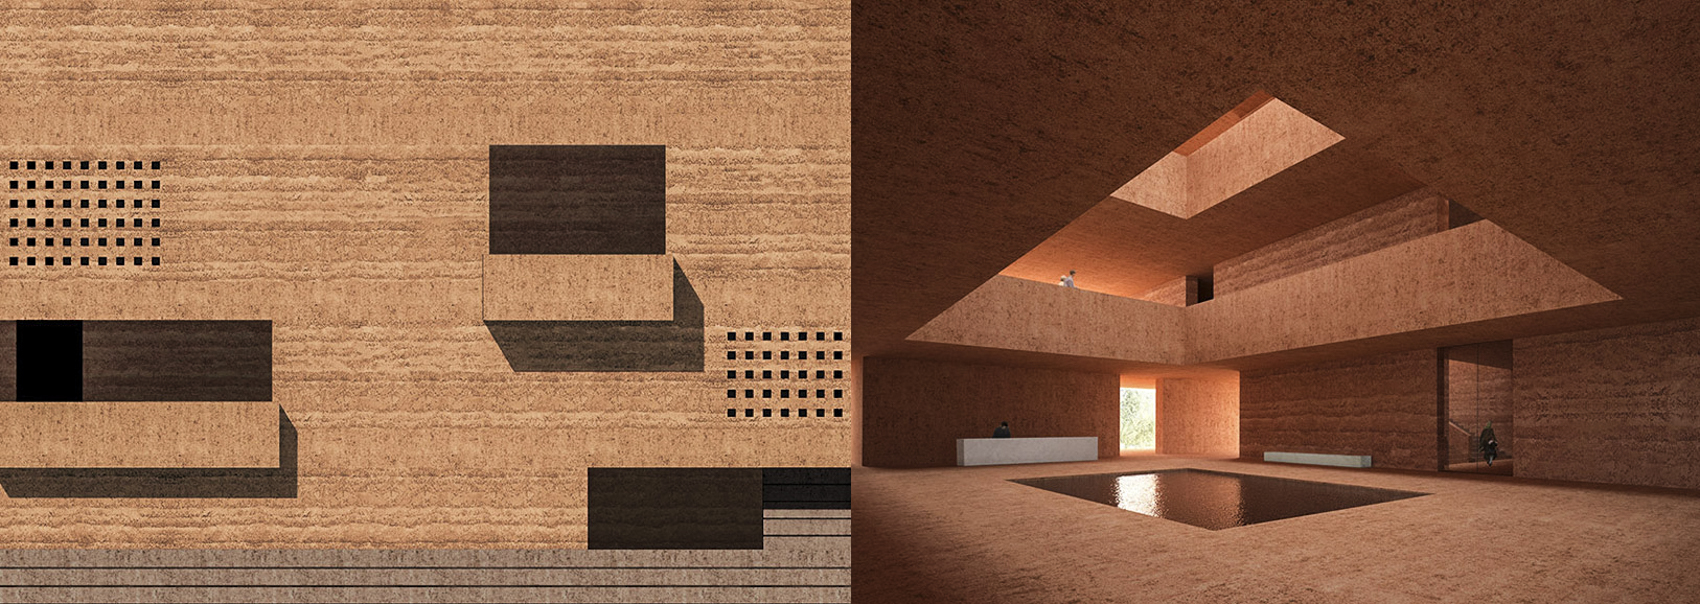 Plans for the new MMPVA, by David Chipperfield